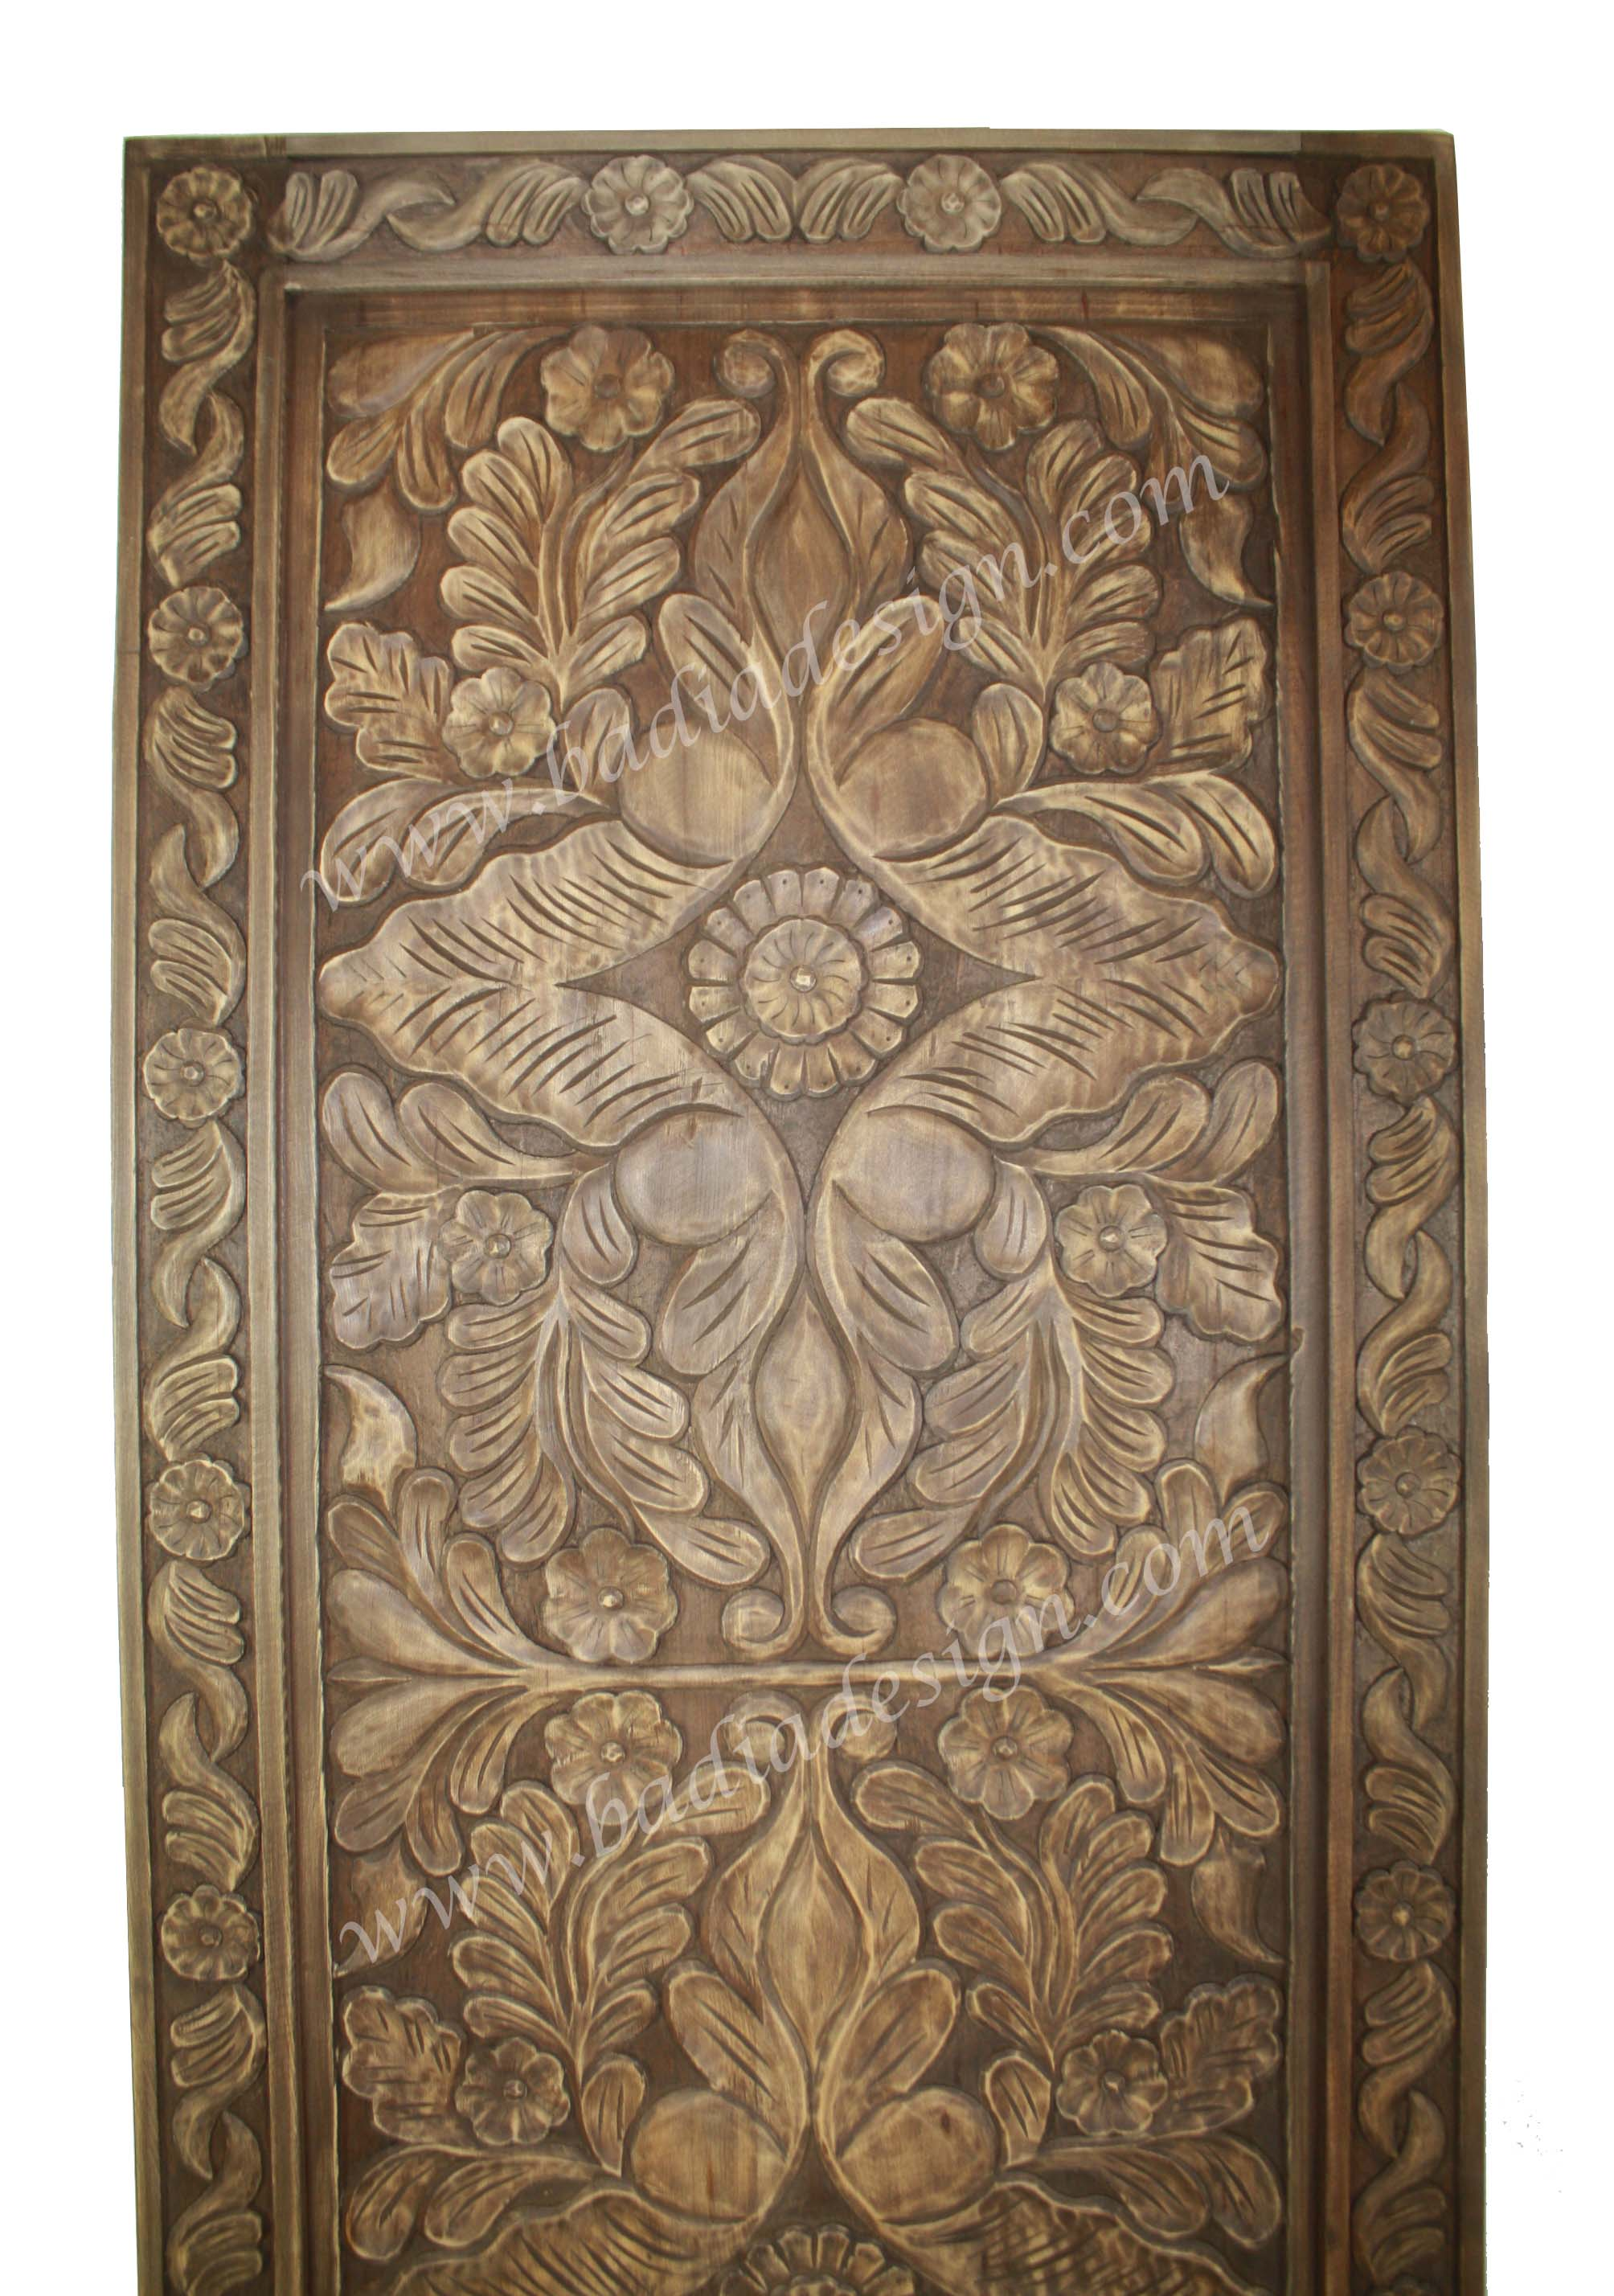 moroccan-hand-carved-wooden-panelwpb-011-2.jpg